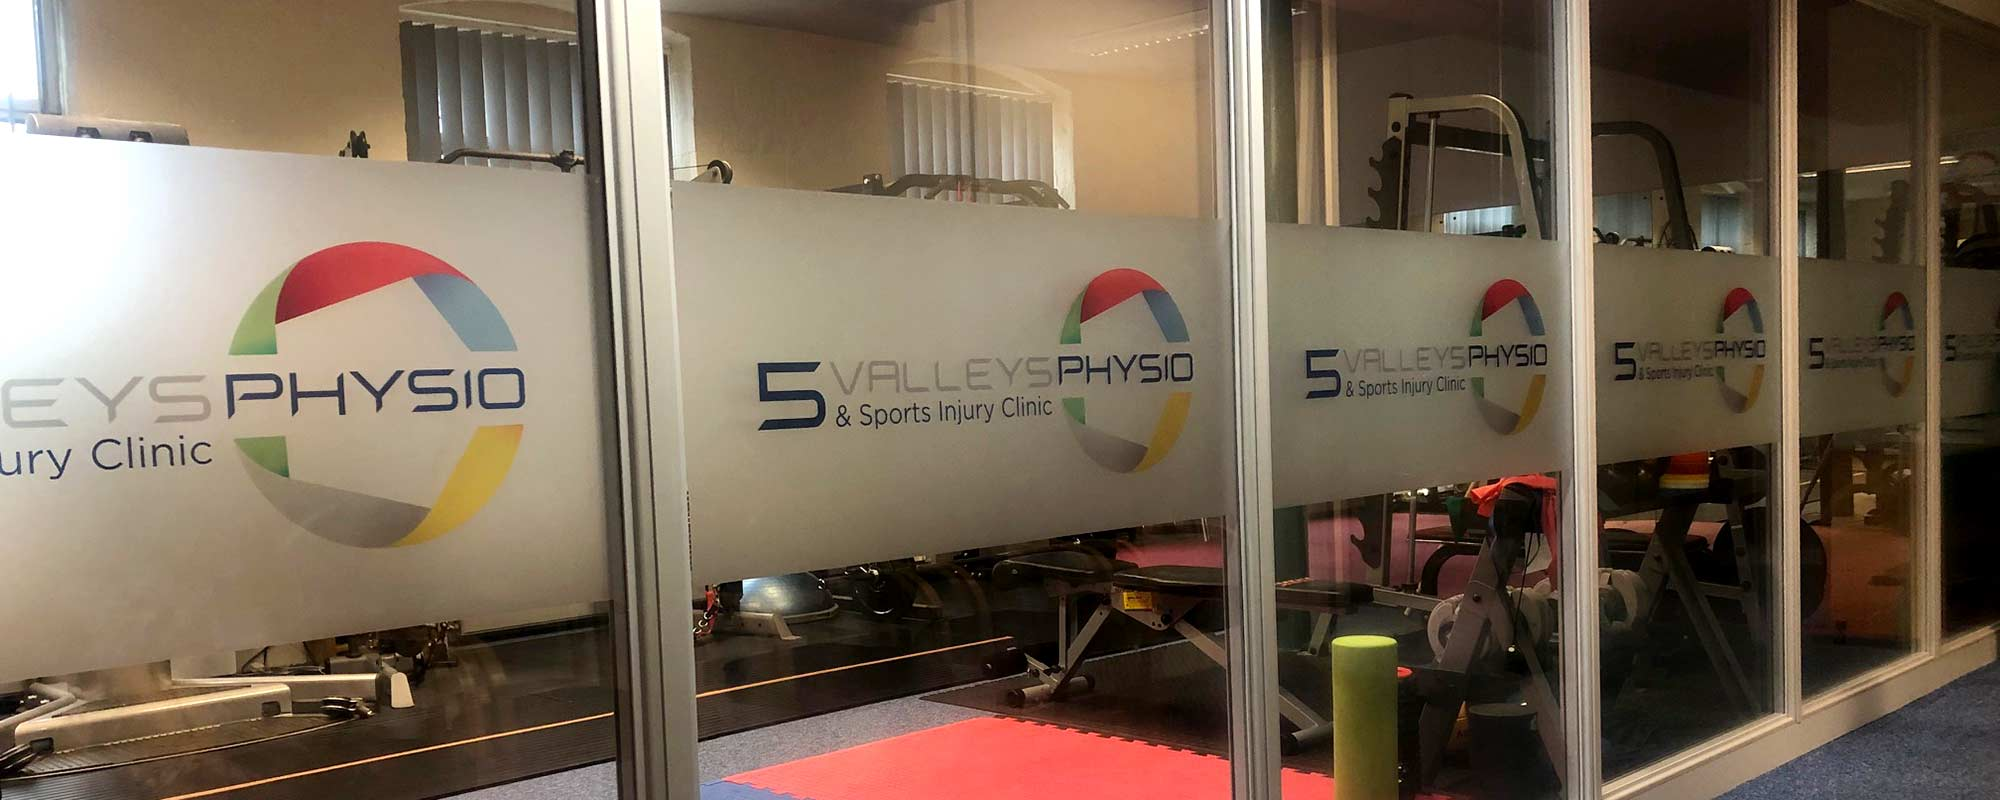 5 Valleys Physiotherapy brand